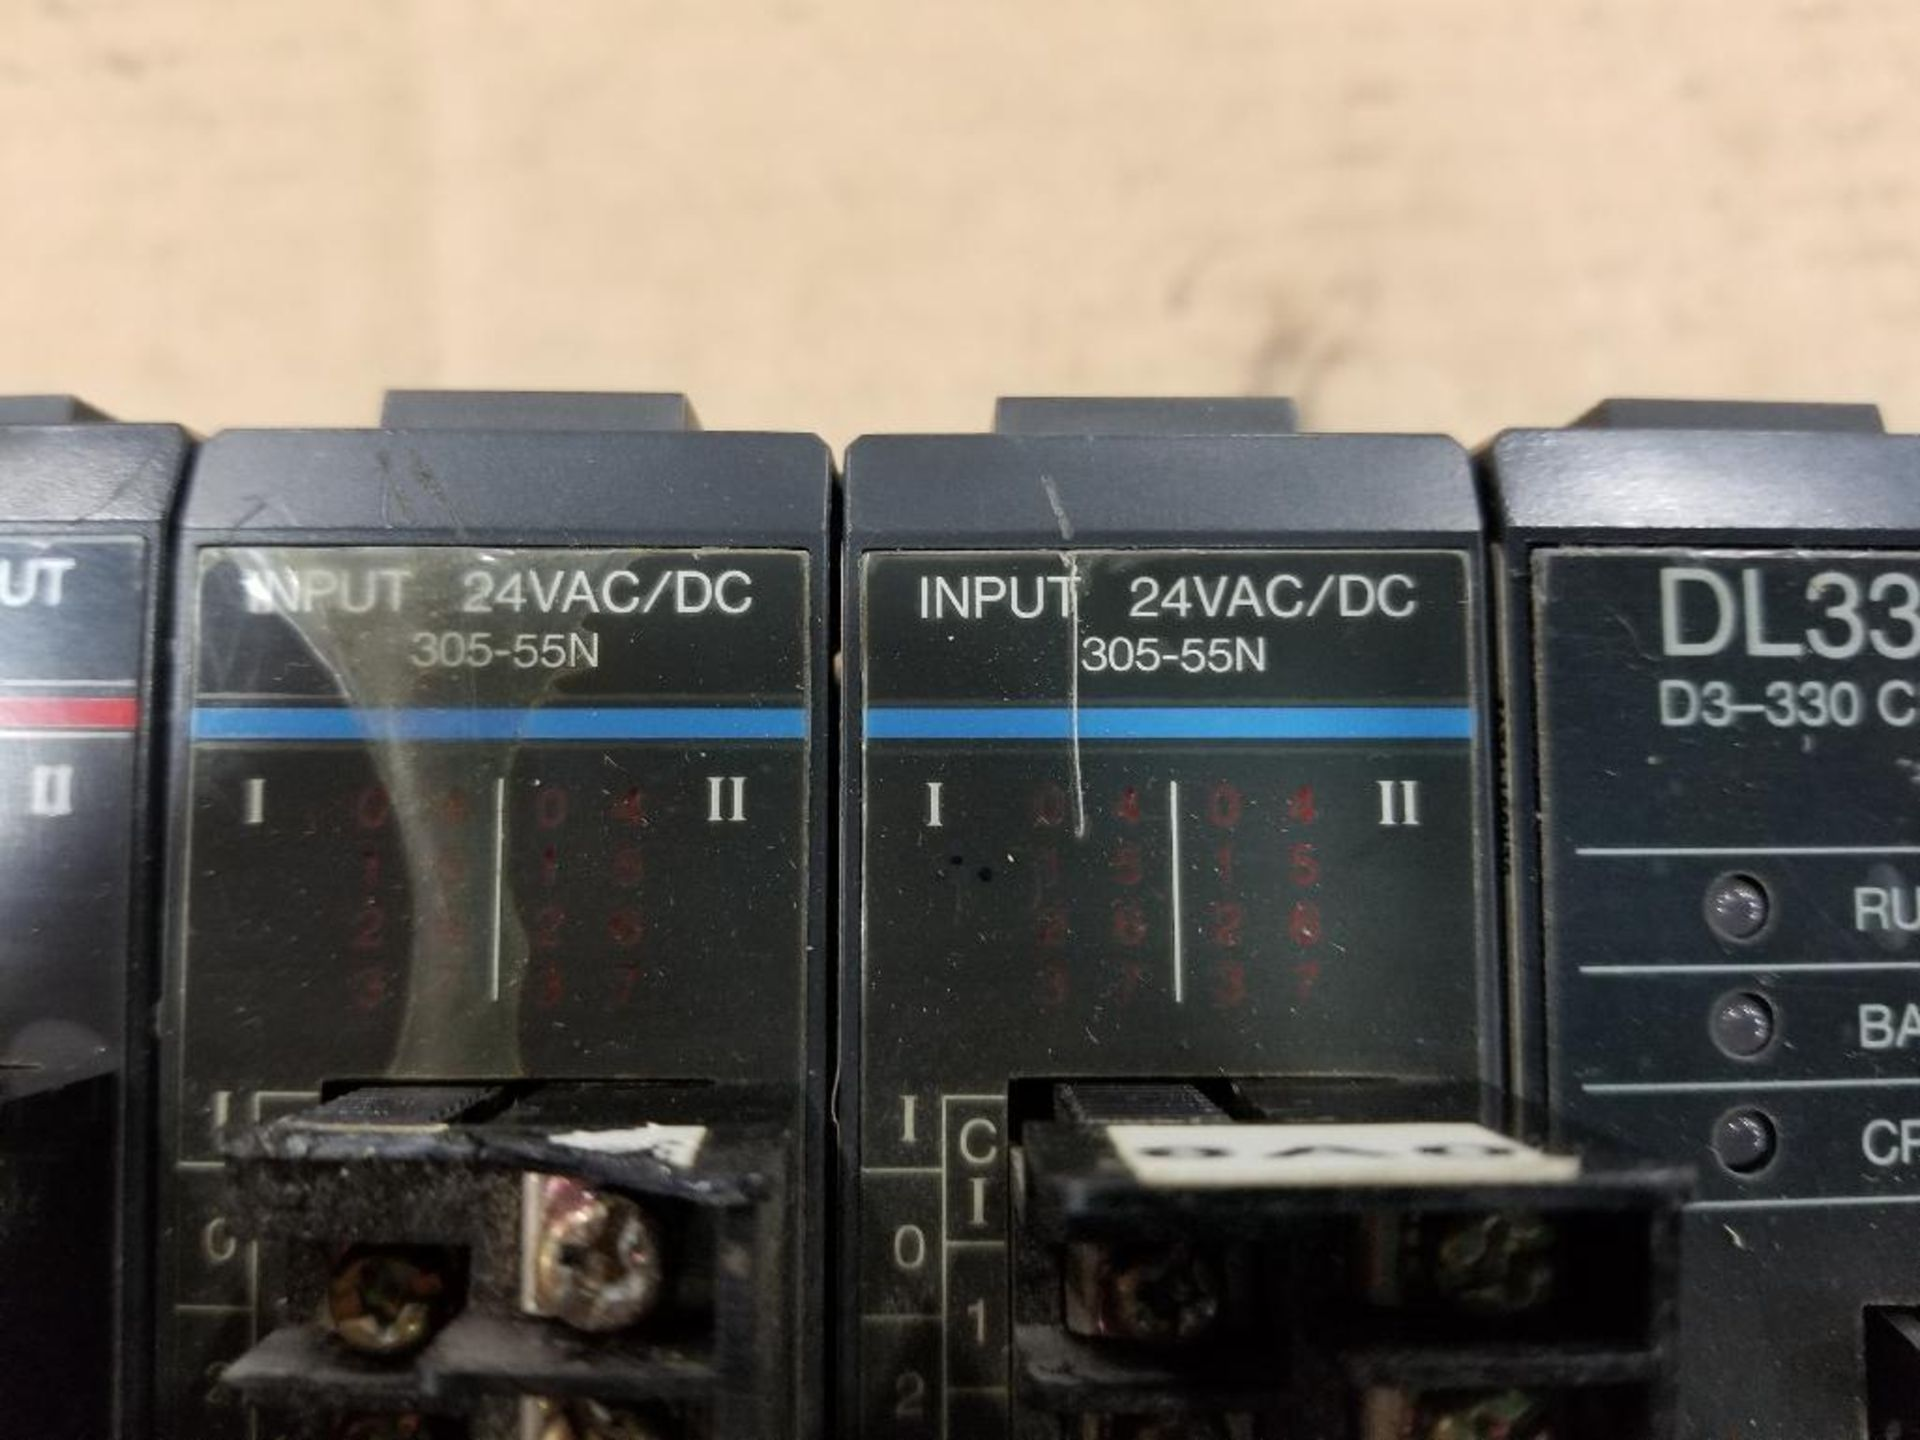 Siemens SIMATIC TI305DC02b Programmable Controller unit. DL330 CPU. - Image 4 of 6